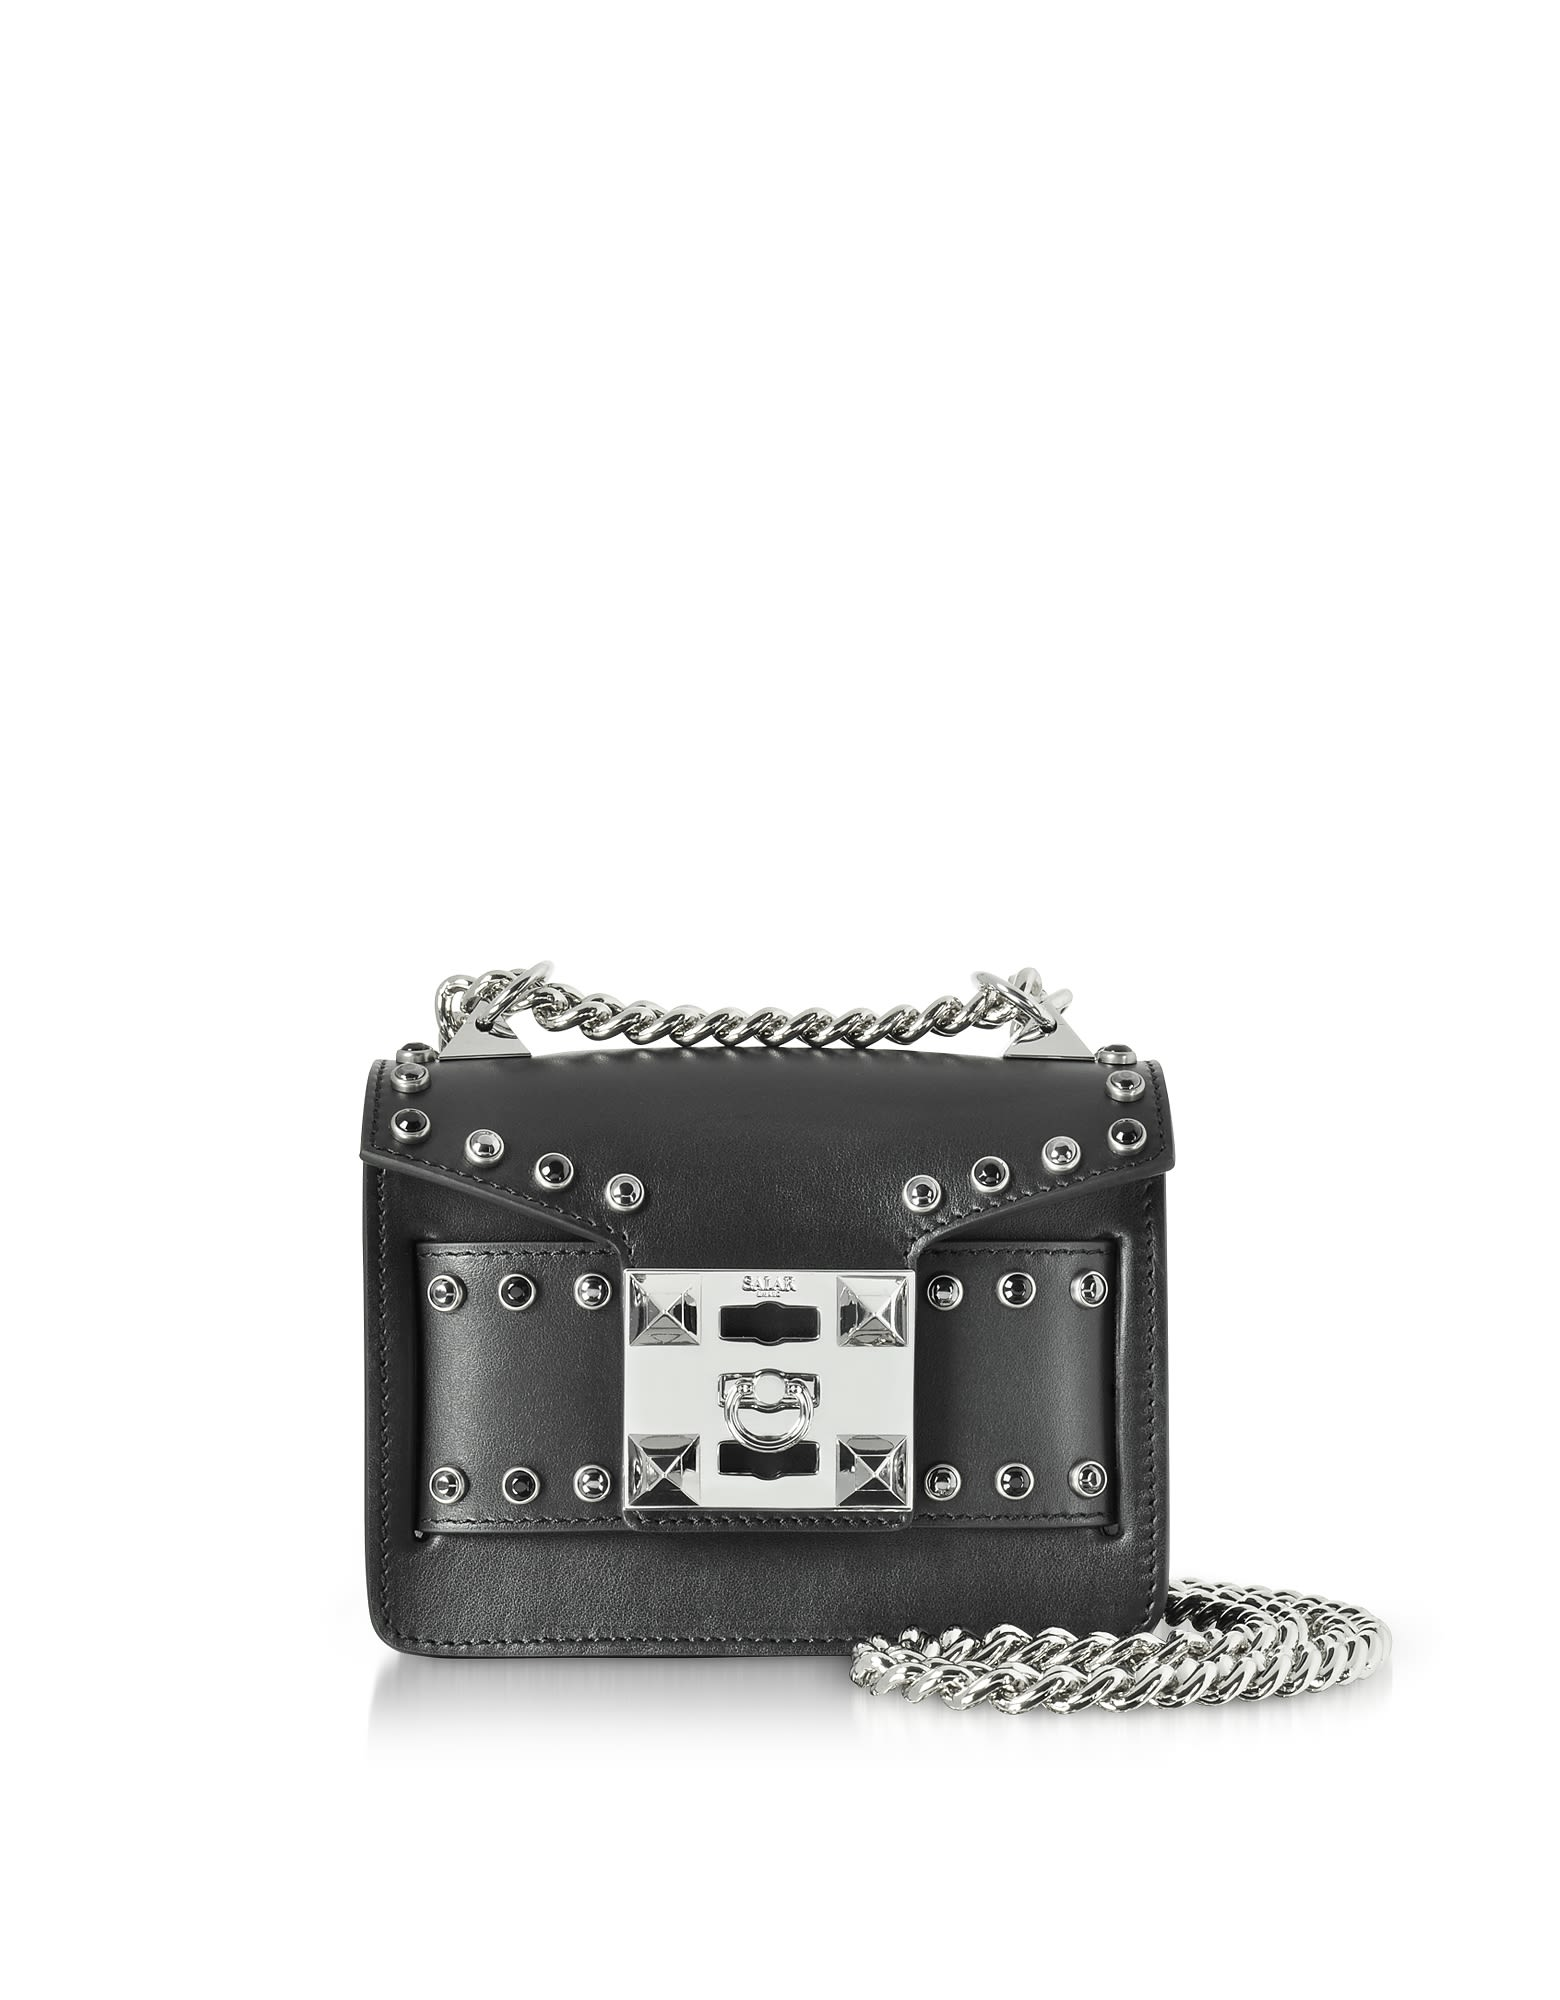 Salar STUDDED LEATHER GAIA RING SHOULDER BAG